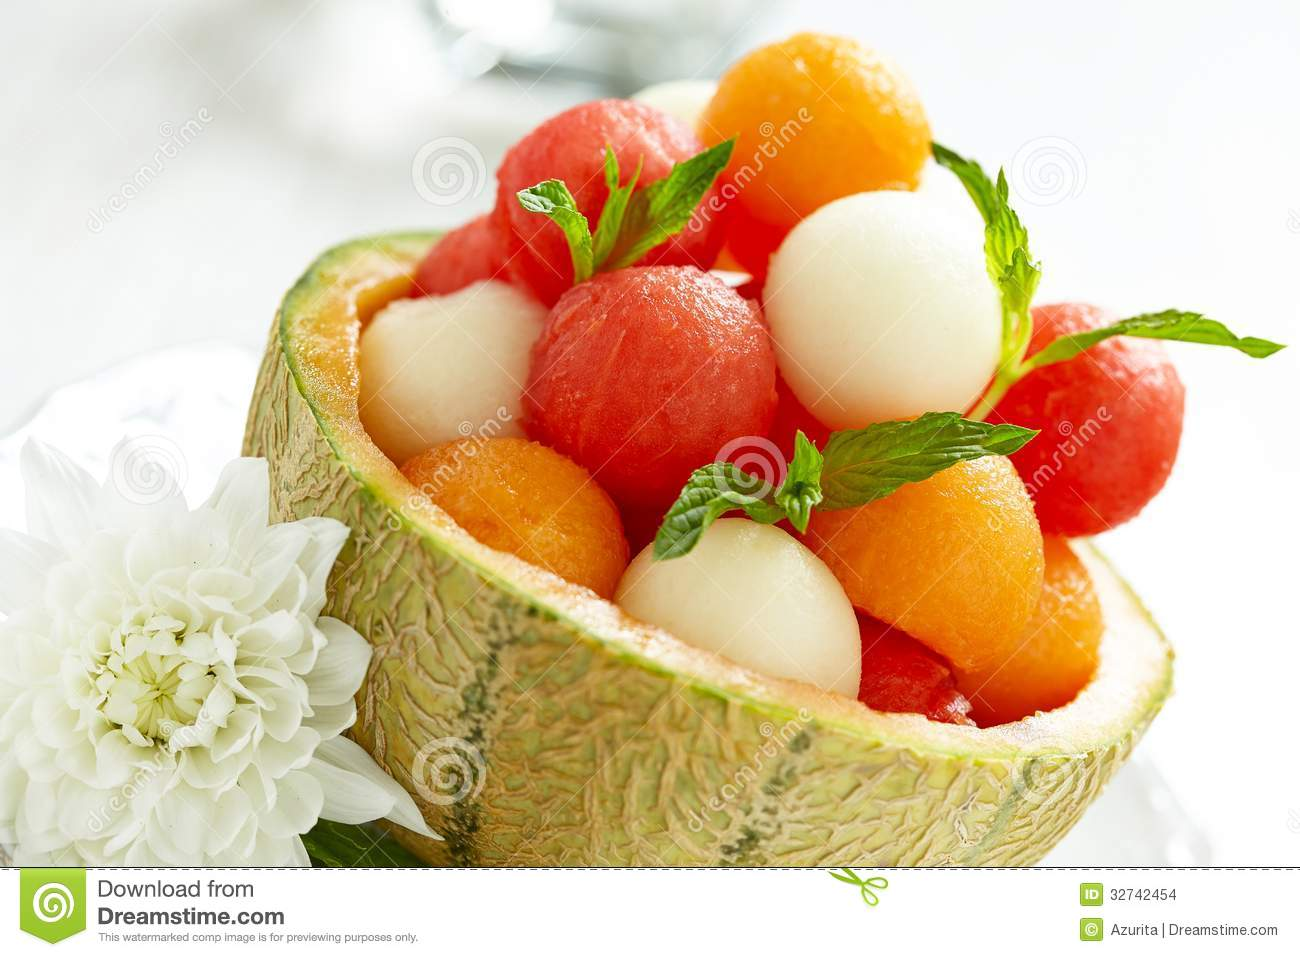 fruit salad with watermelon and melon balls stock photo - image of